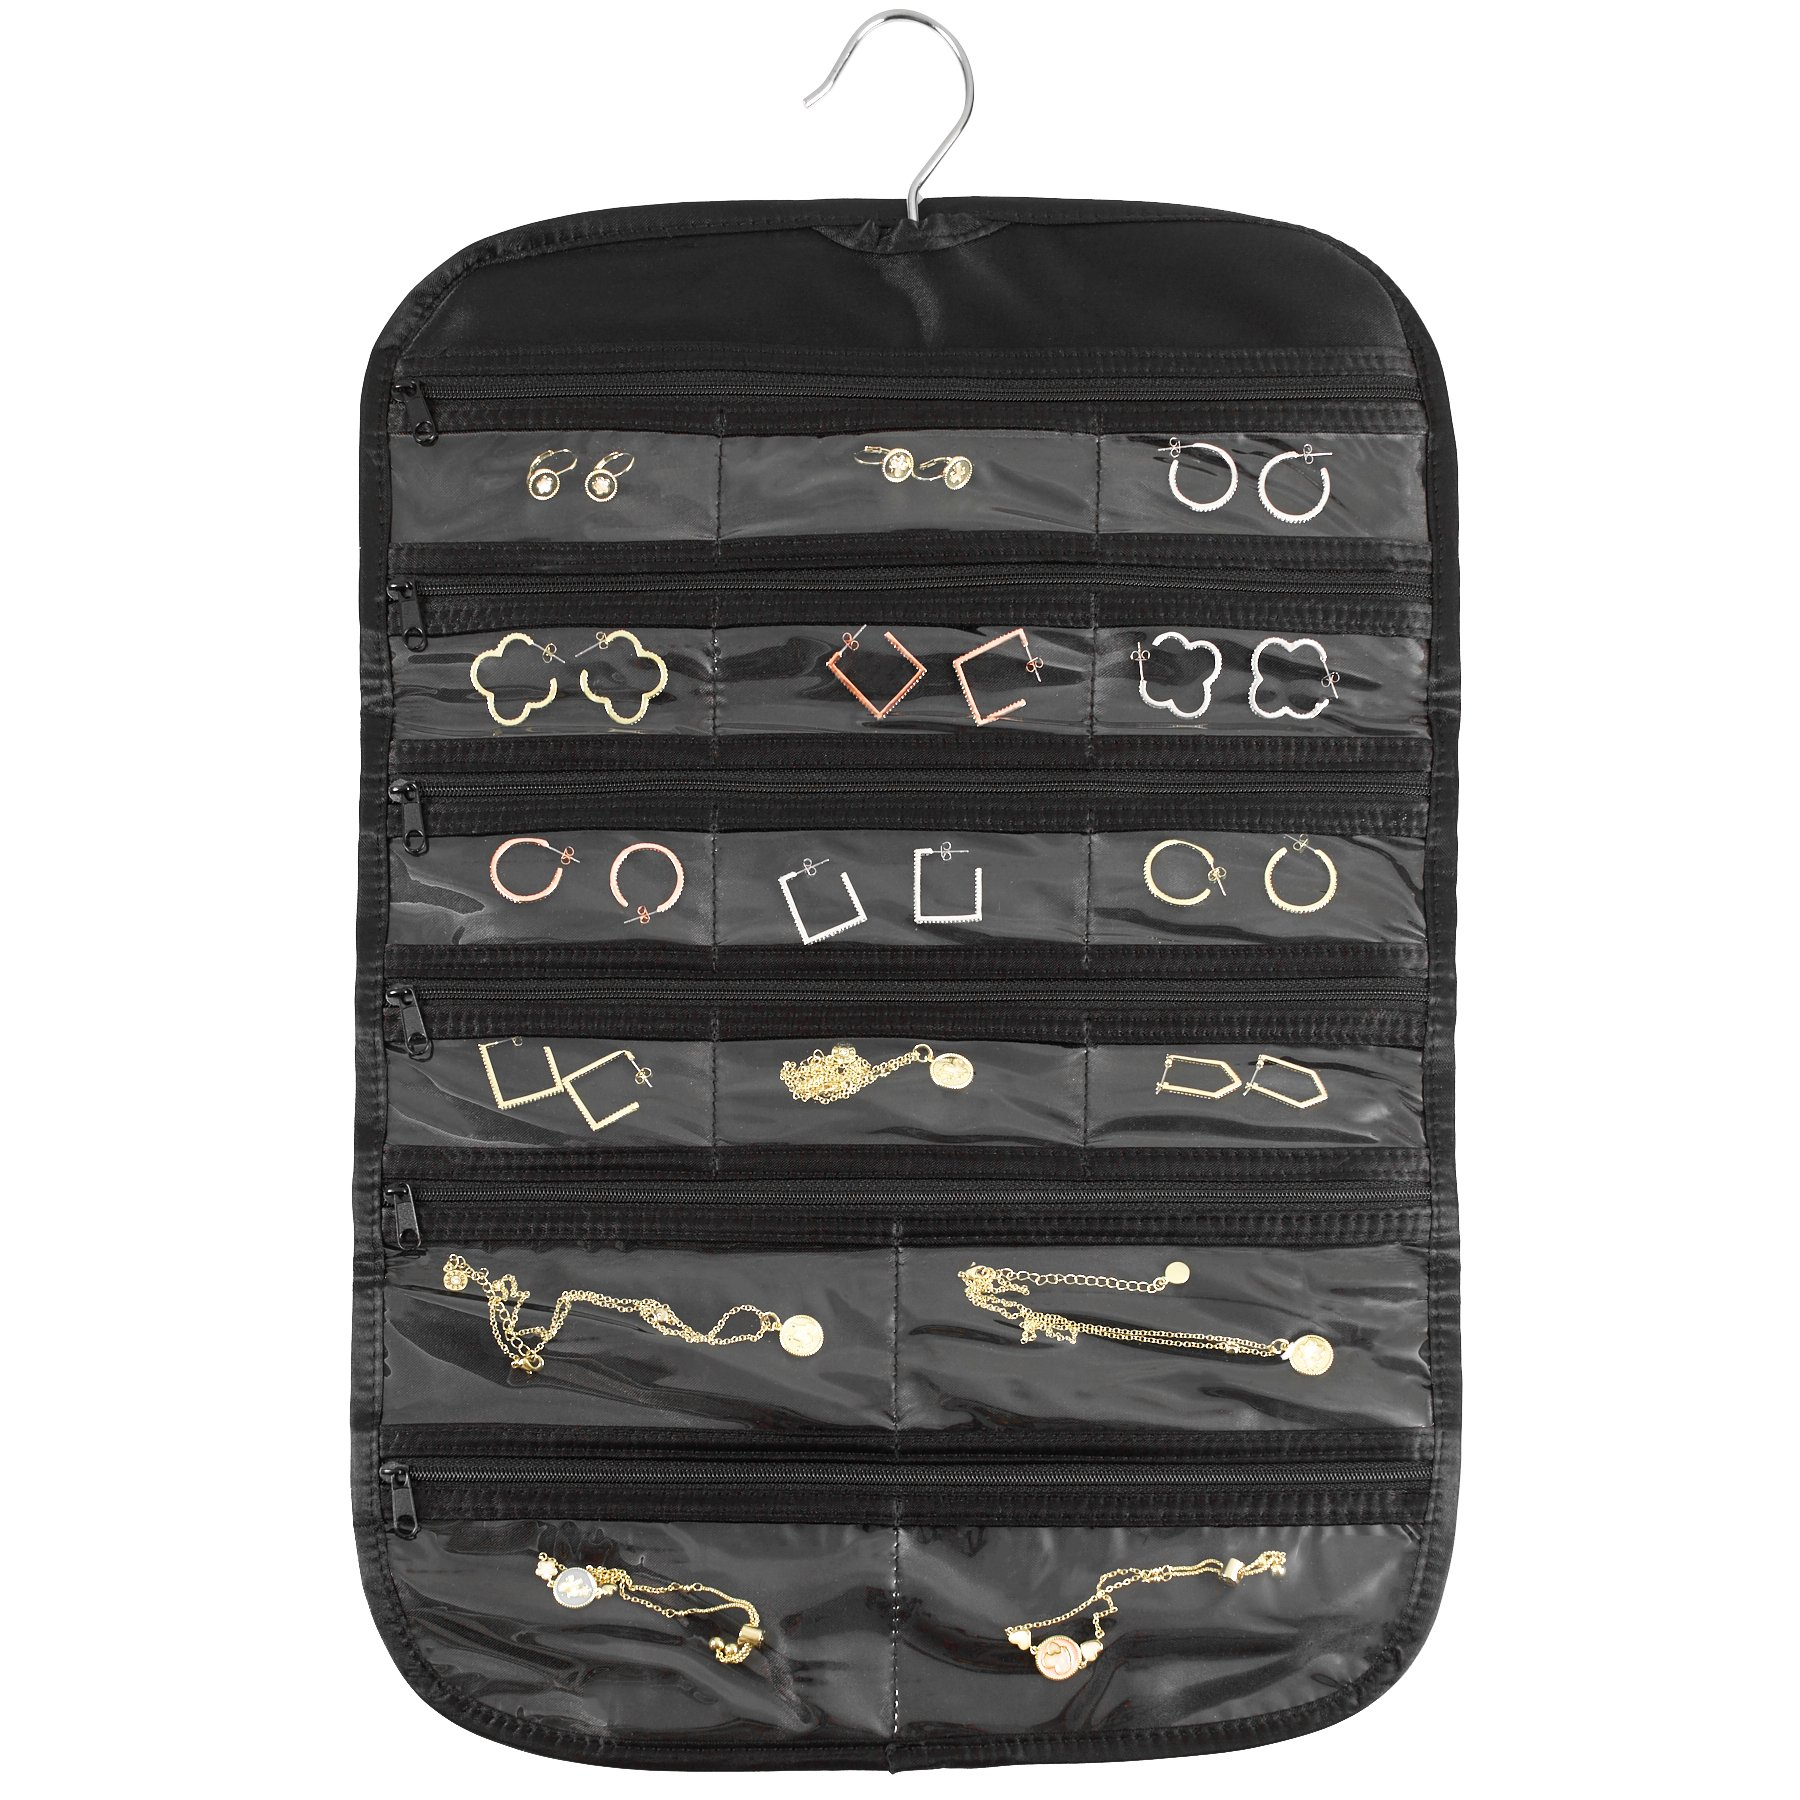 FloridaBrands 31-Pocket Hanging Jewelry and Accessory Organizer with Silver Hook - Black